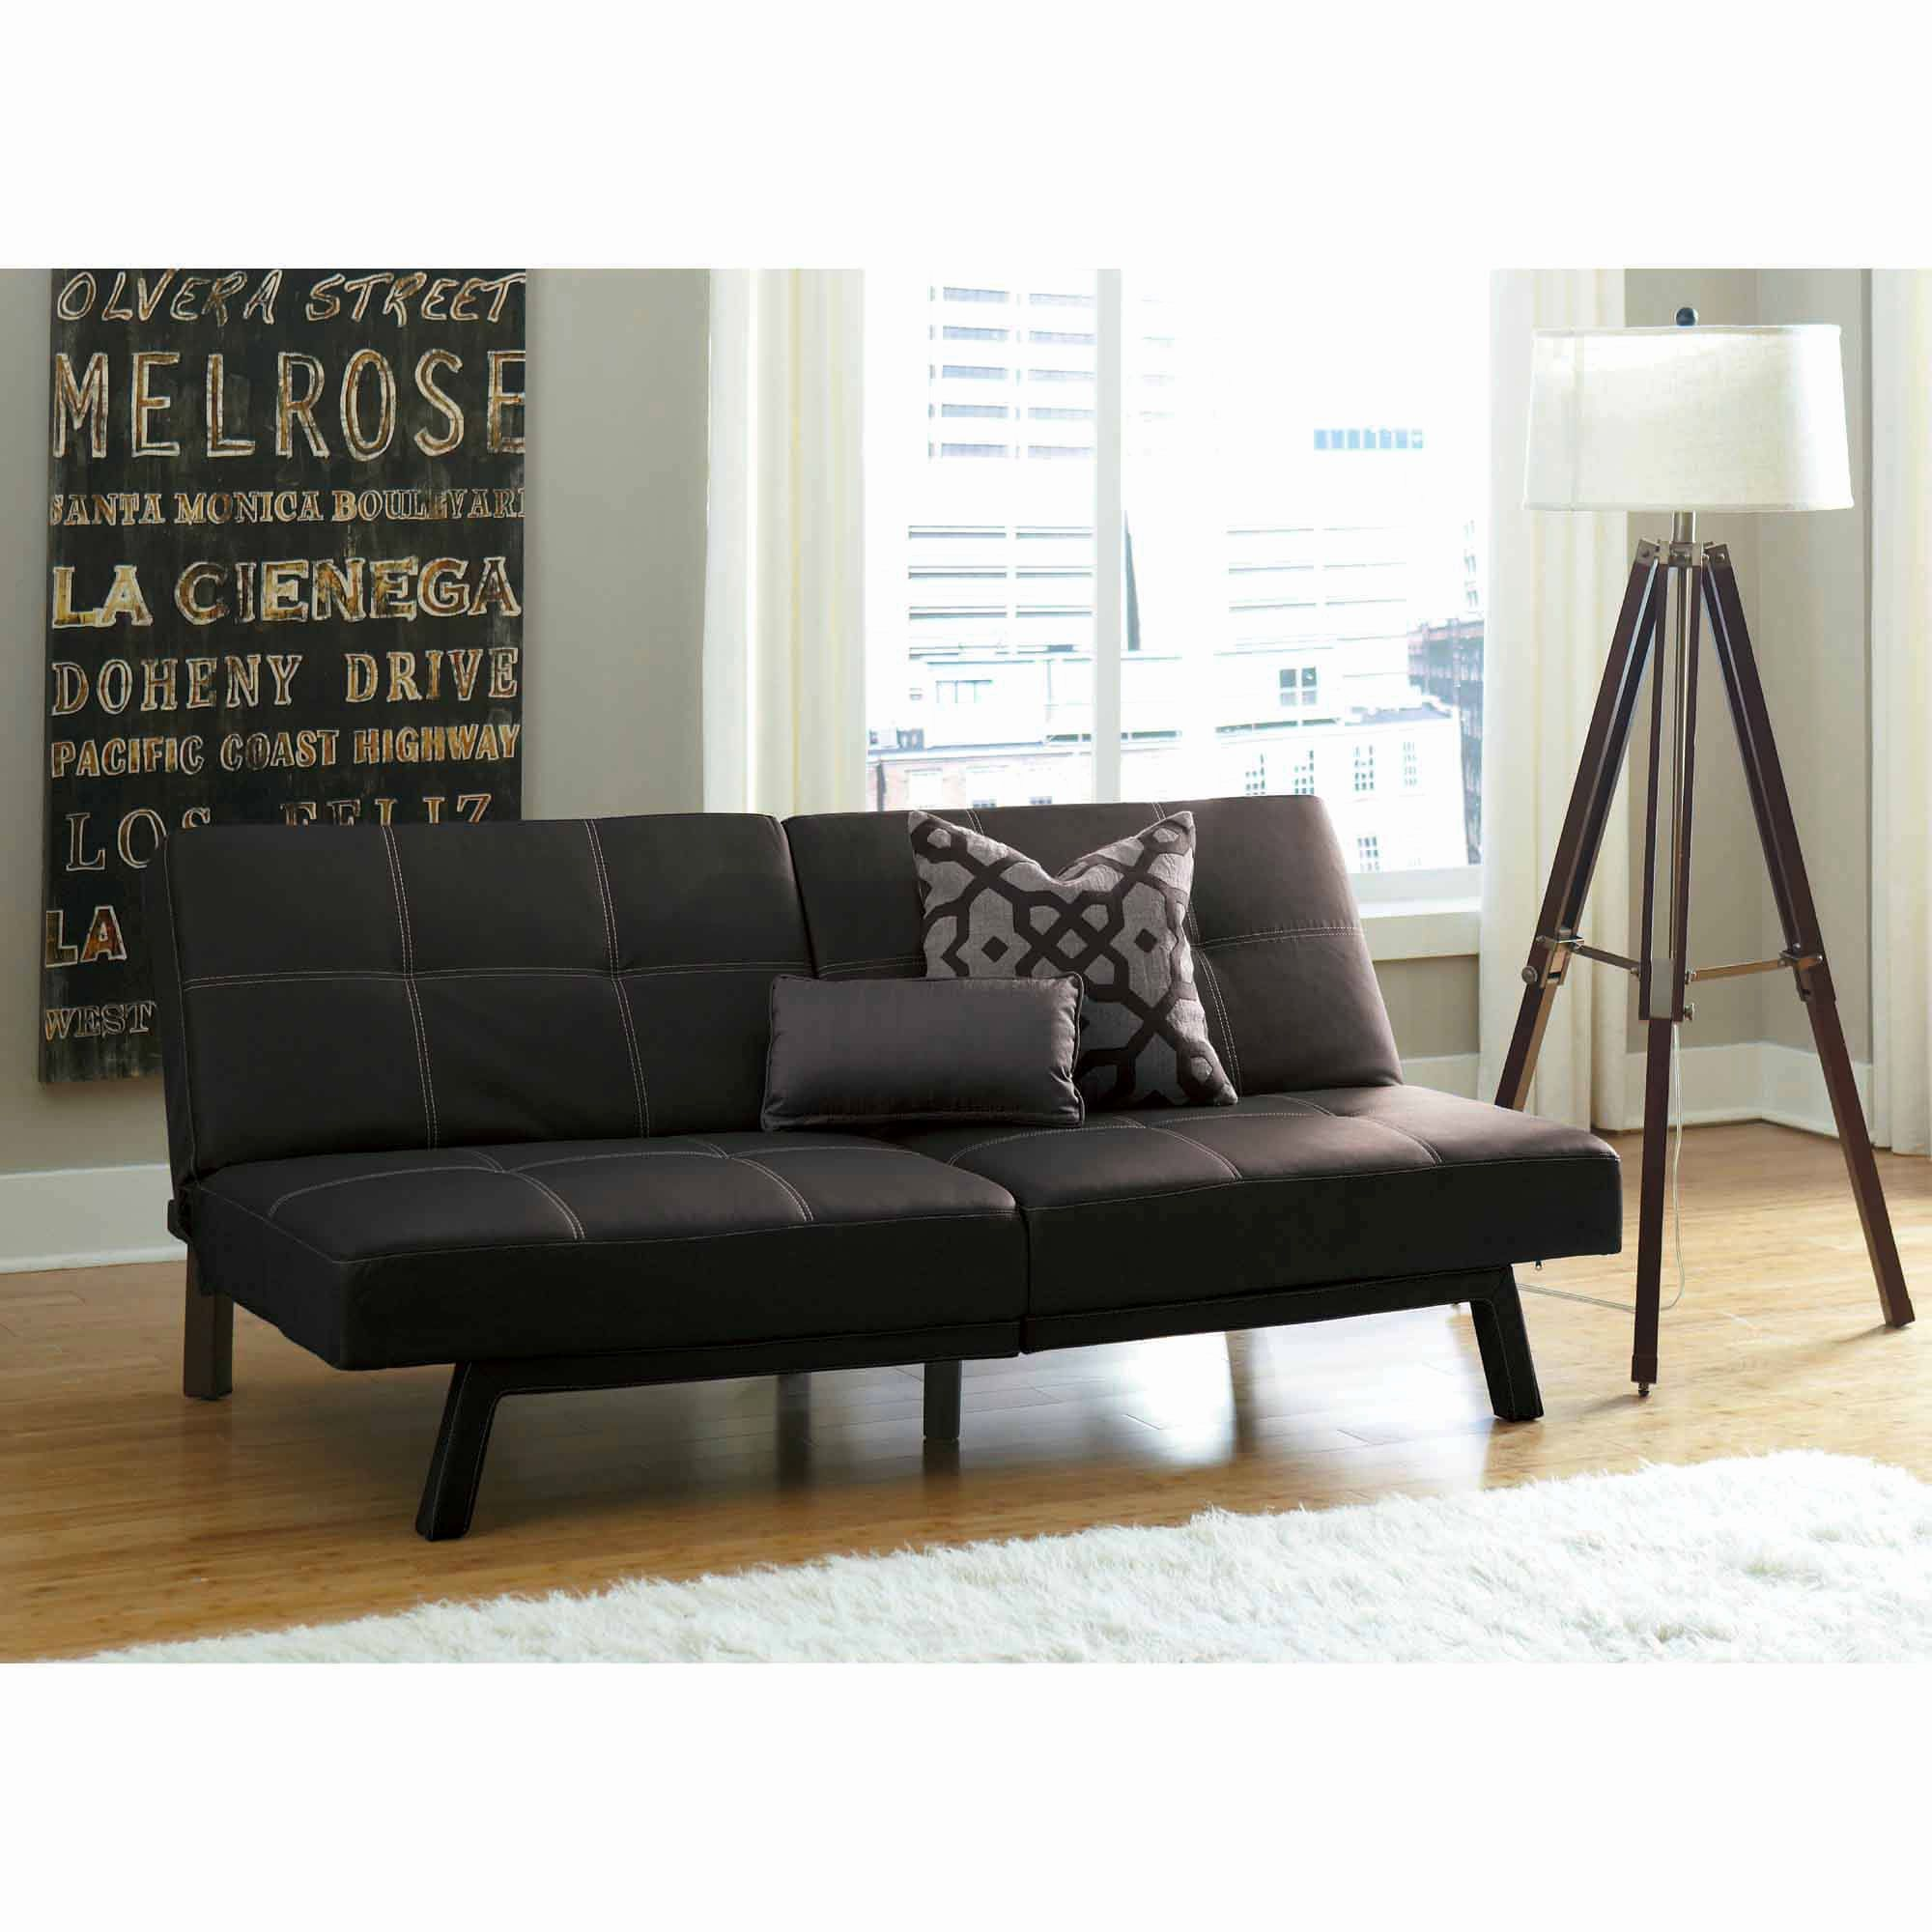 Walmart Sofas And Sectionals Mirror Over Sofa Height Lovely Sectional Photographs Awesome Futon Living Room Set At Custom Pink Ashley